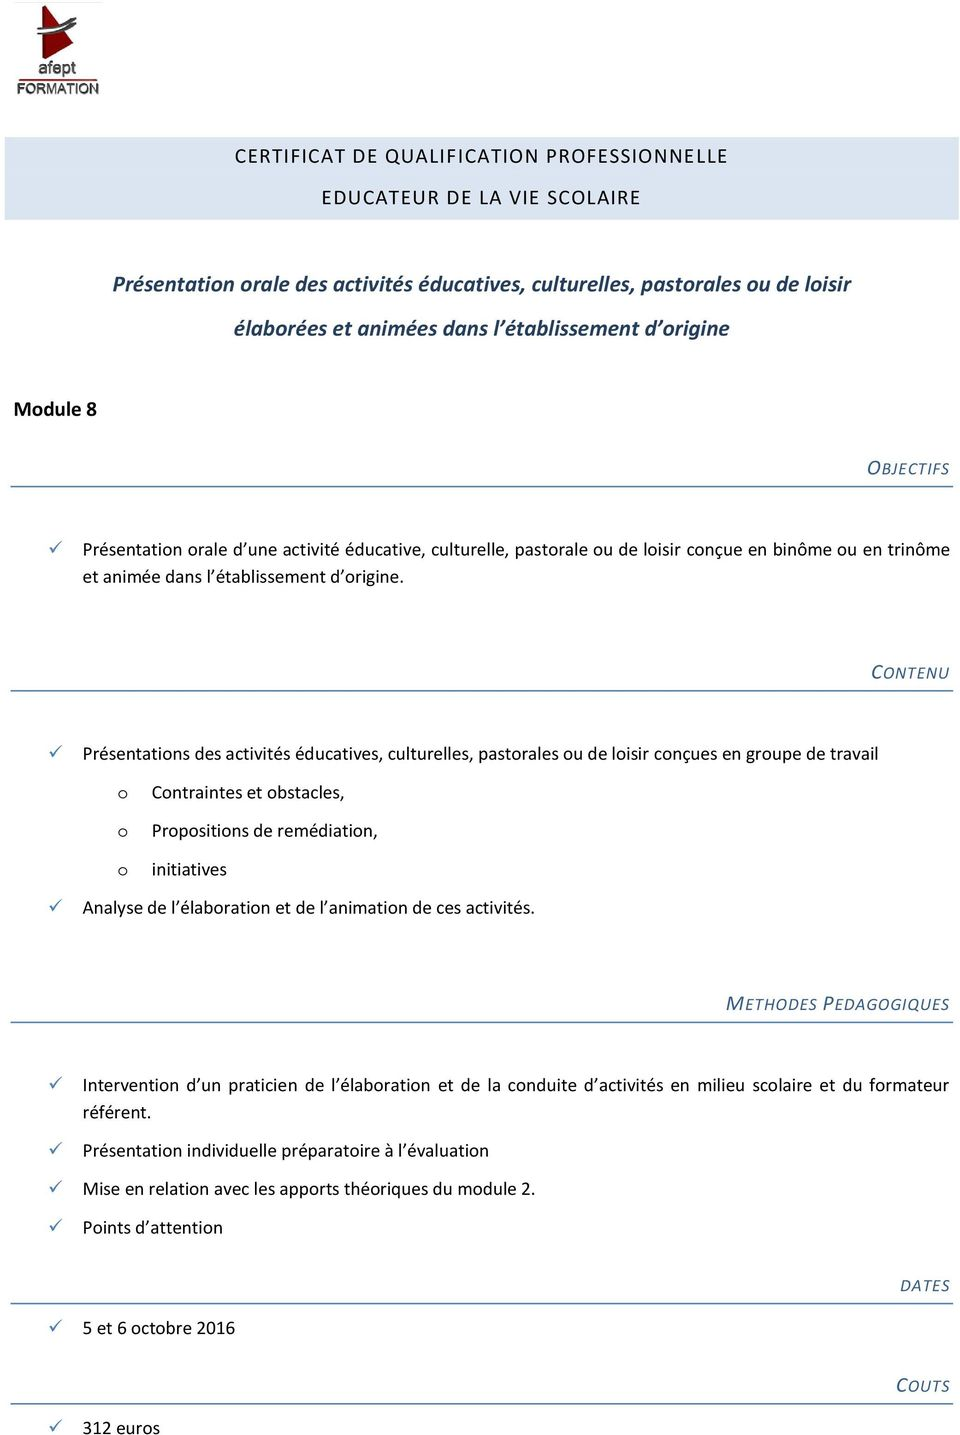 Présentations des activités éducatives, culturelles, pastorales ou de loisir conçues en groupe de travail o o o Contraintes et obstacles, Propositions de remédiation, initiatives Analyse de l